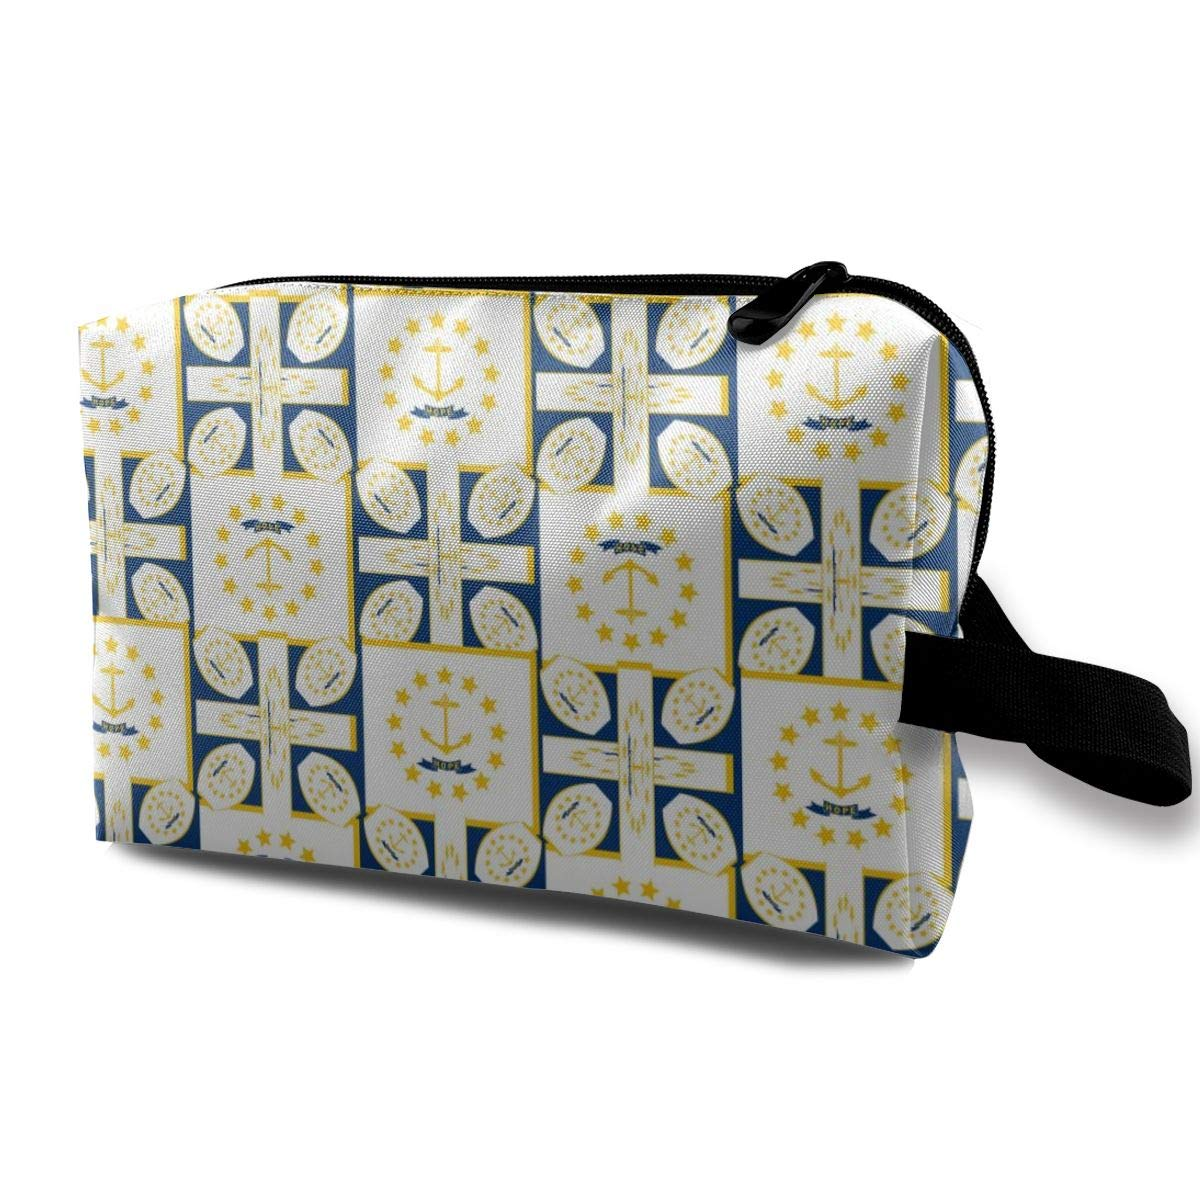 Rhode Island Toiletry Bag Multifunction Cosmetic Bag Portable Makeup Pouch Travel Organizer Bag For Women Girls